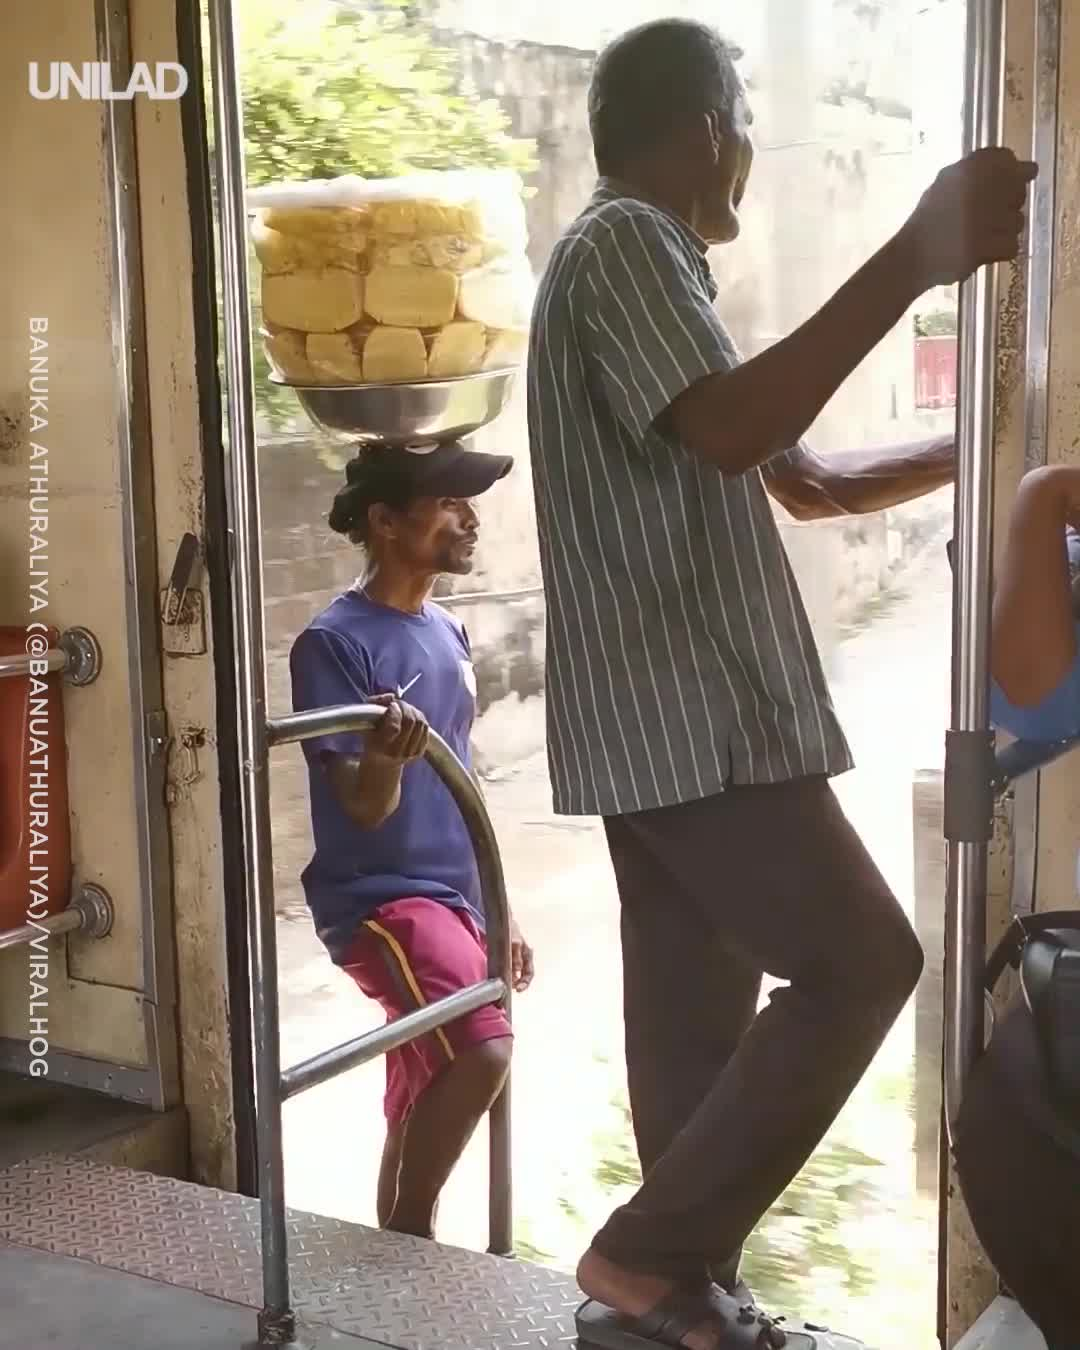 This Pineapple sales-guy riding train GIFs